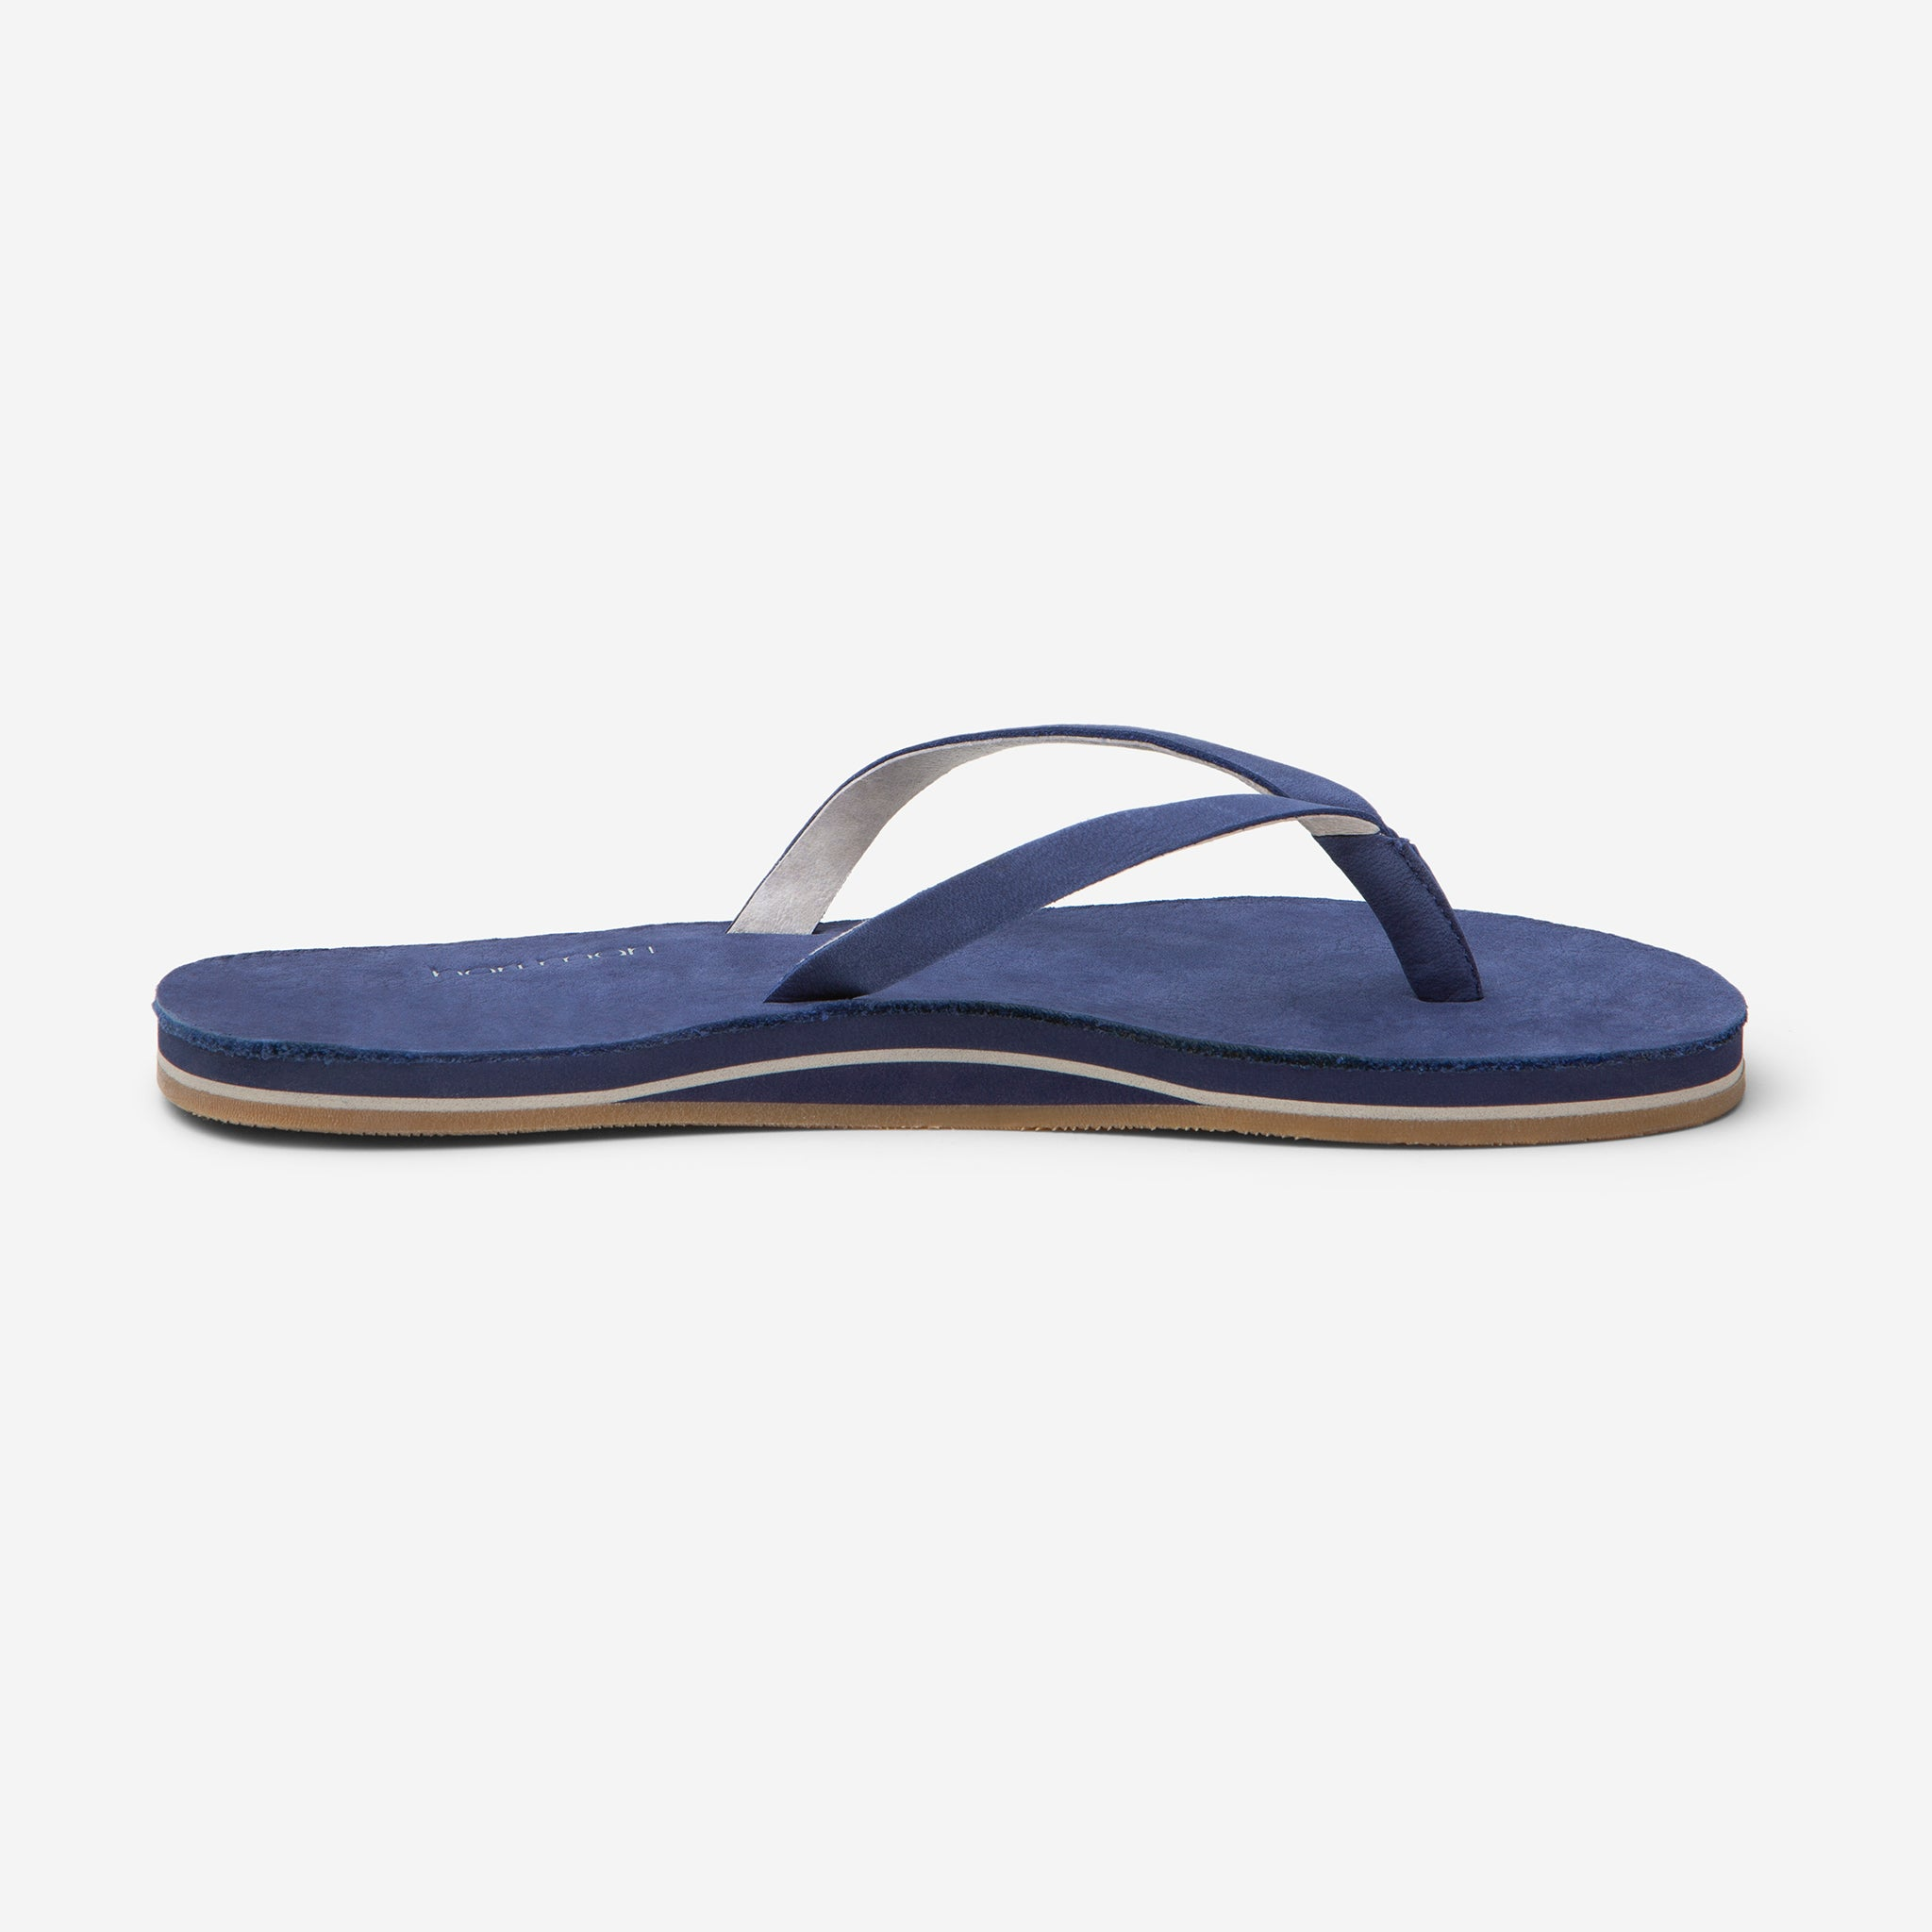 side profile of Hari Mari Women's Meadows Flip Flops in Navy on white background